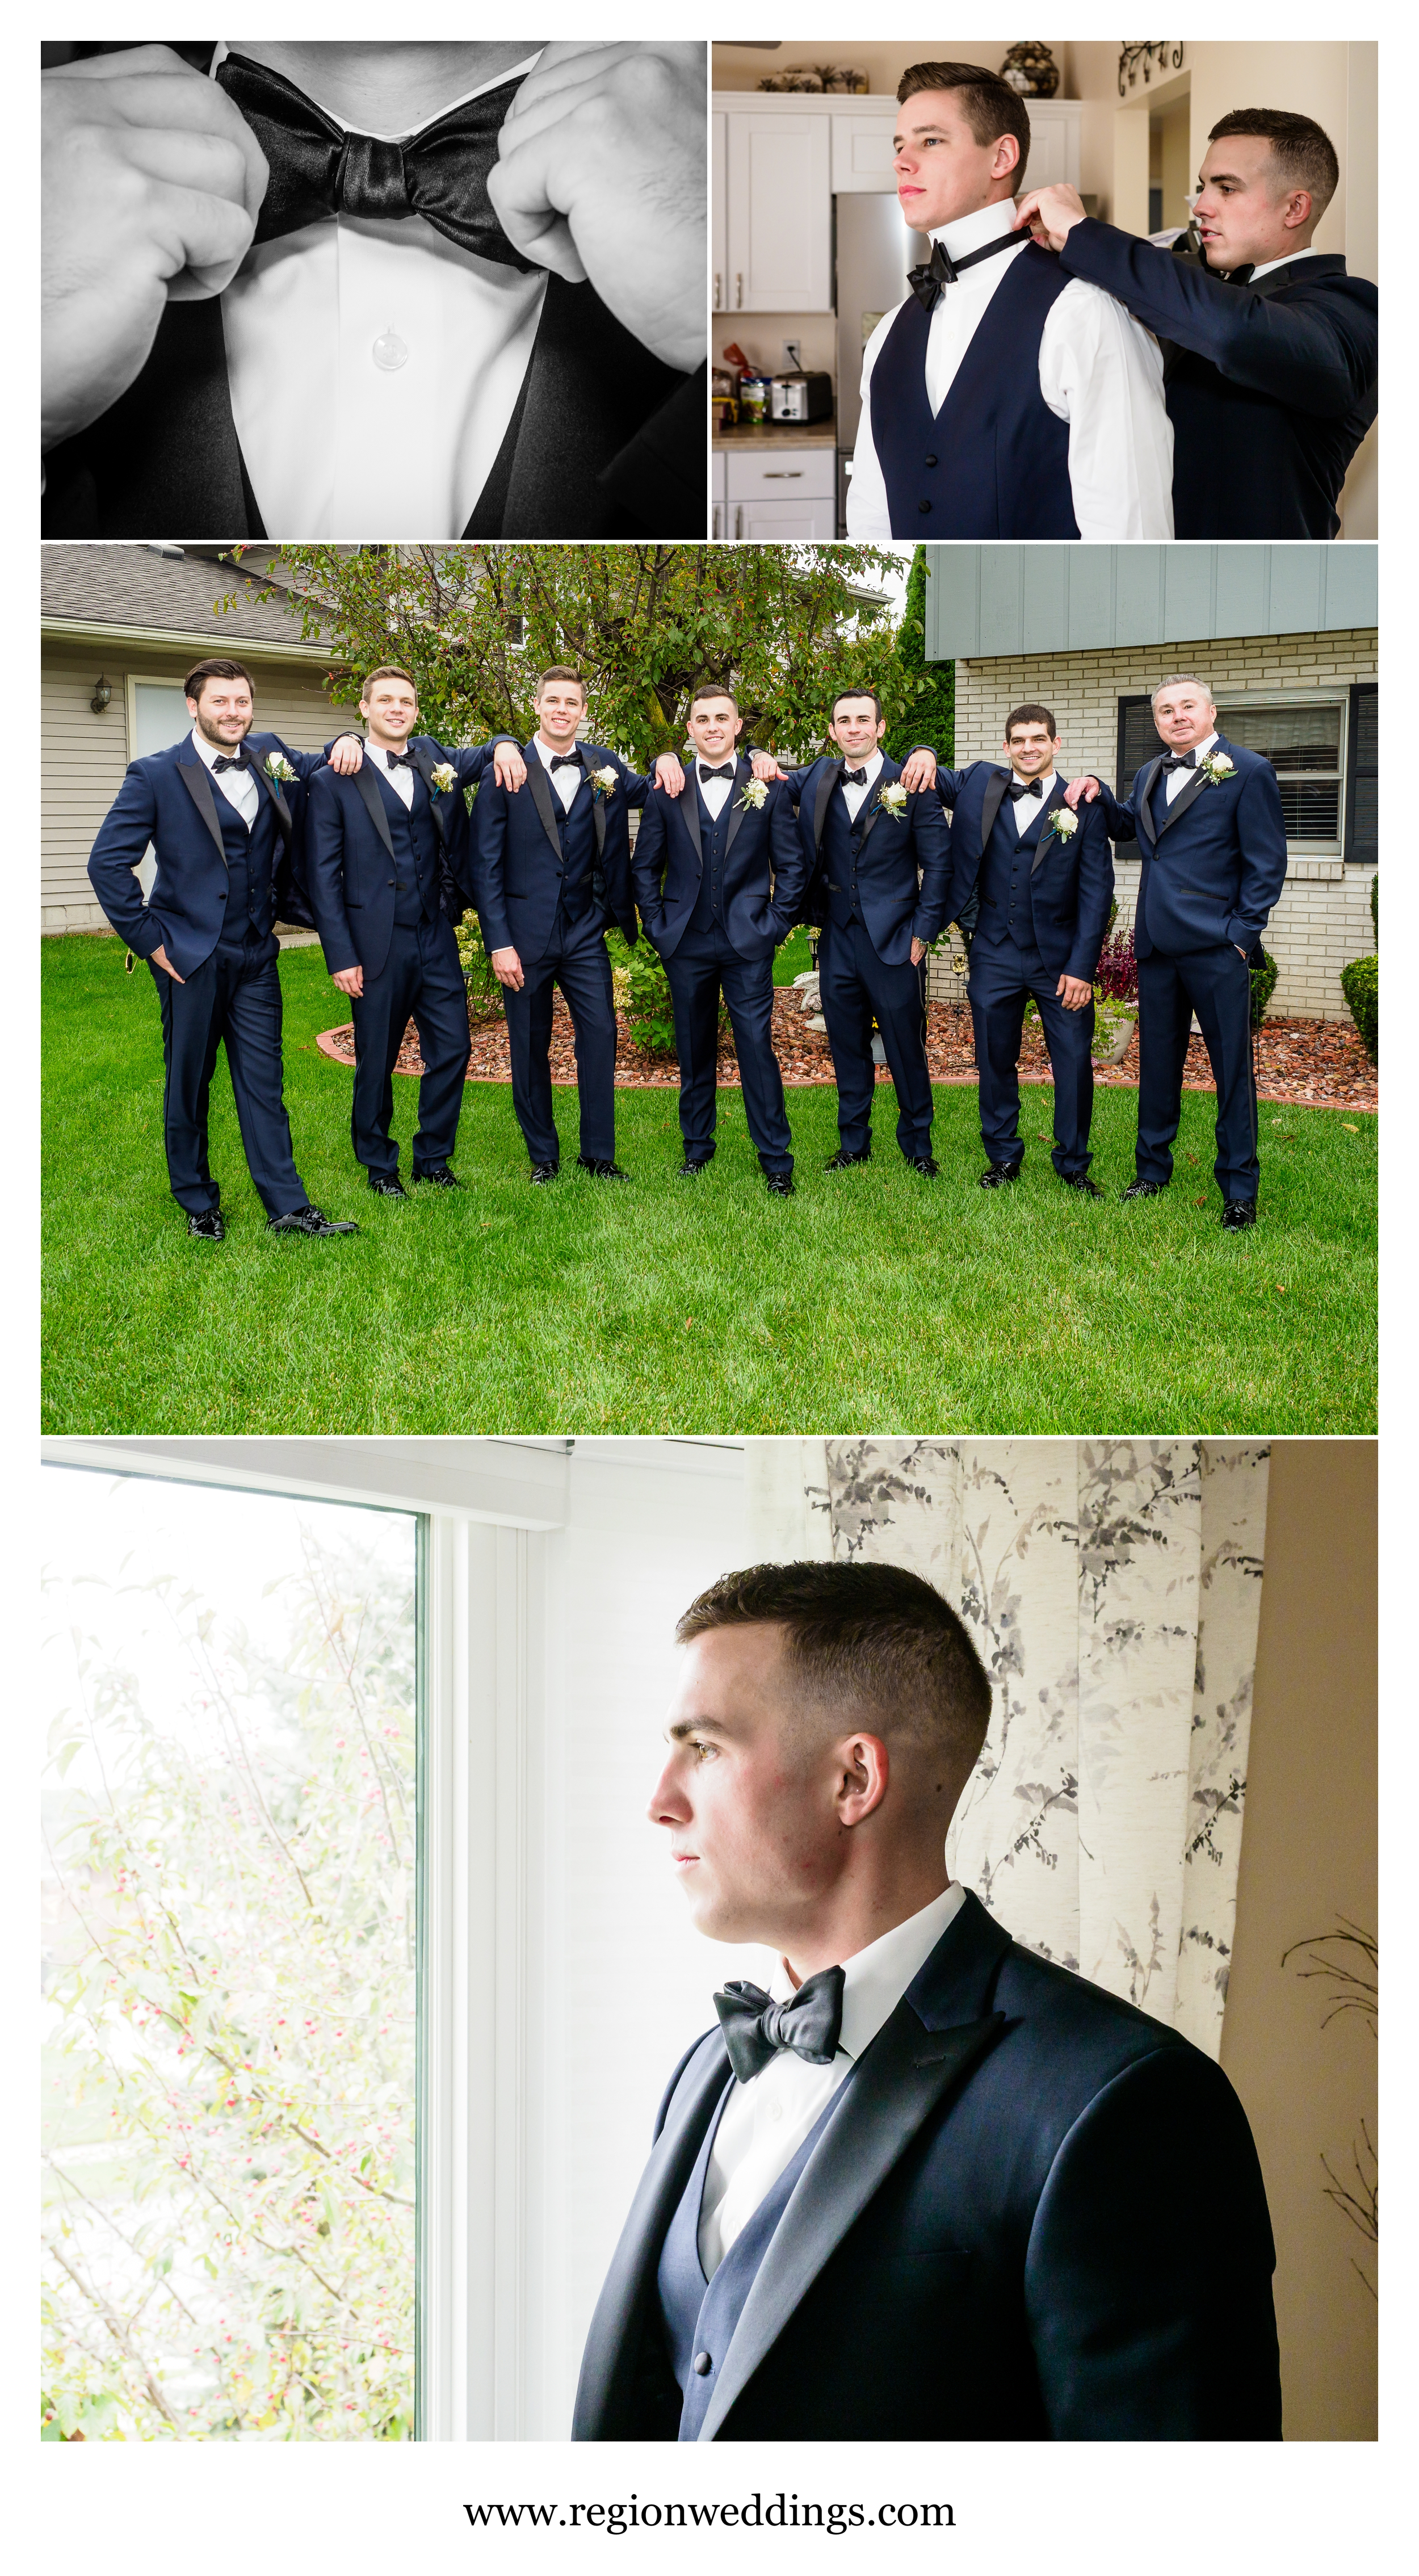 Groomsmen prep for an October wedding.